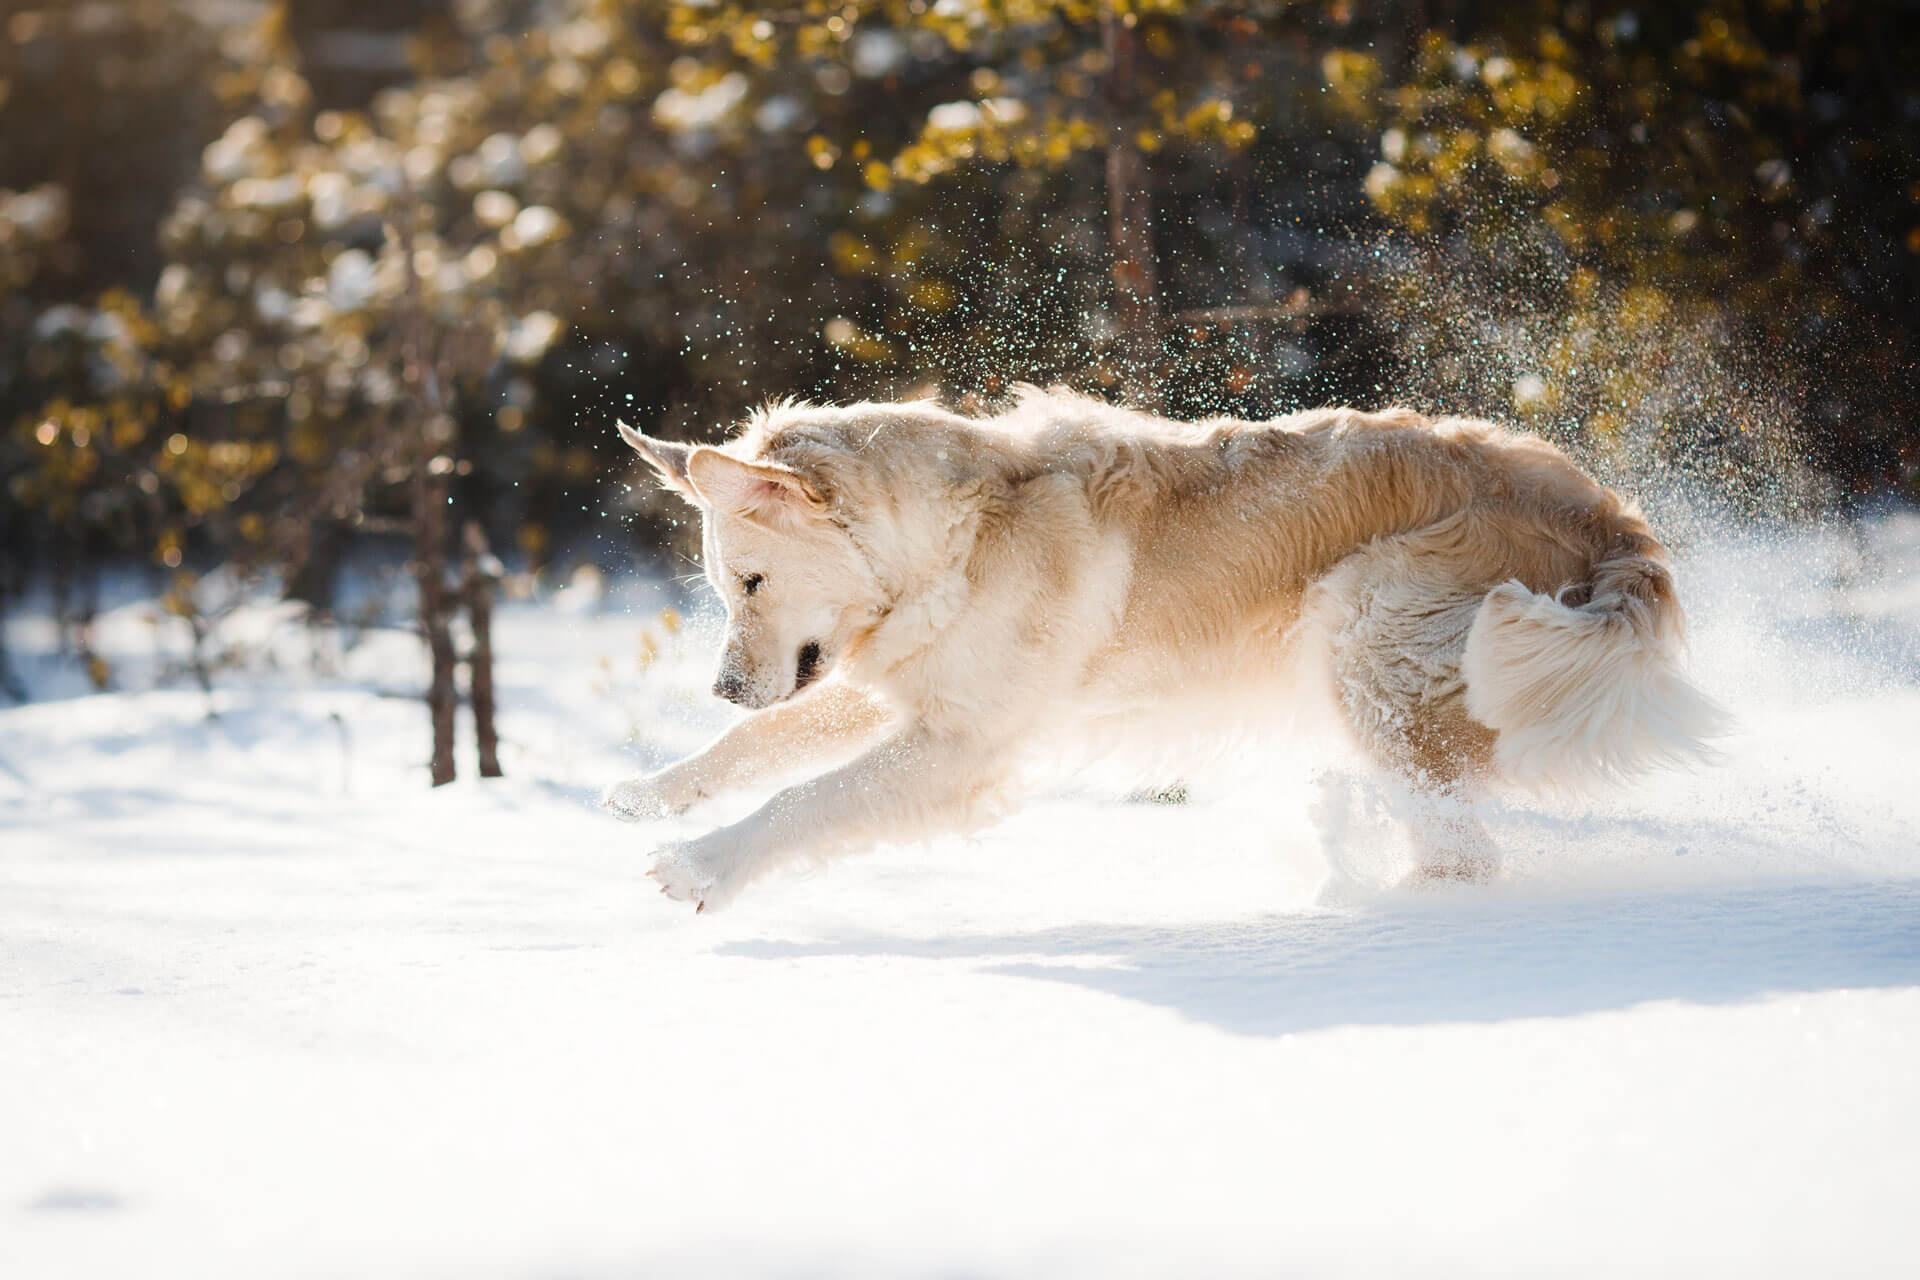 4 fun dog-friendly winter activities to try with your dog in snow